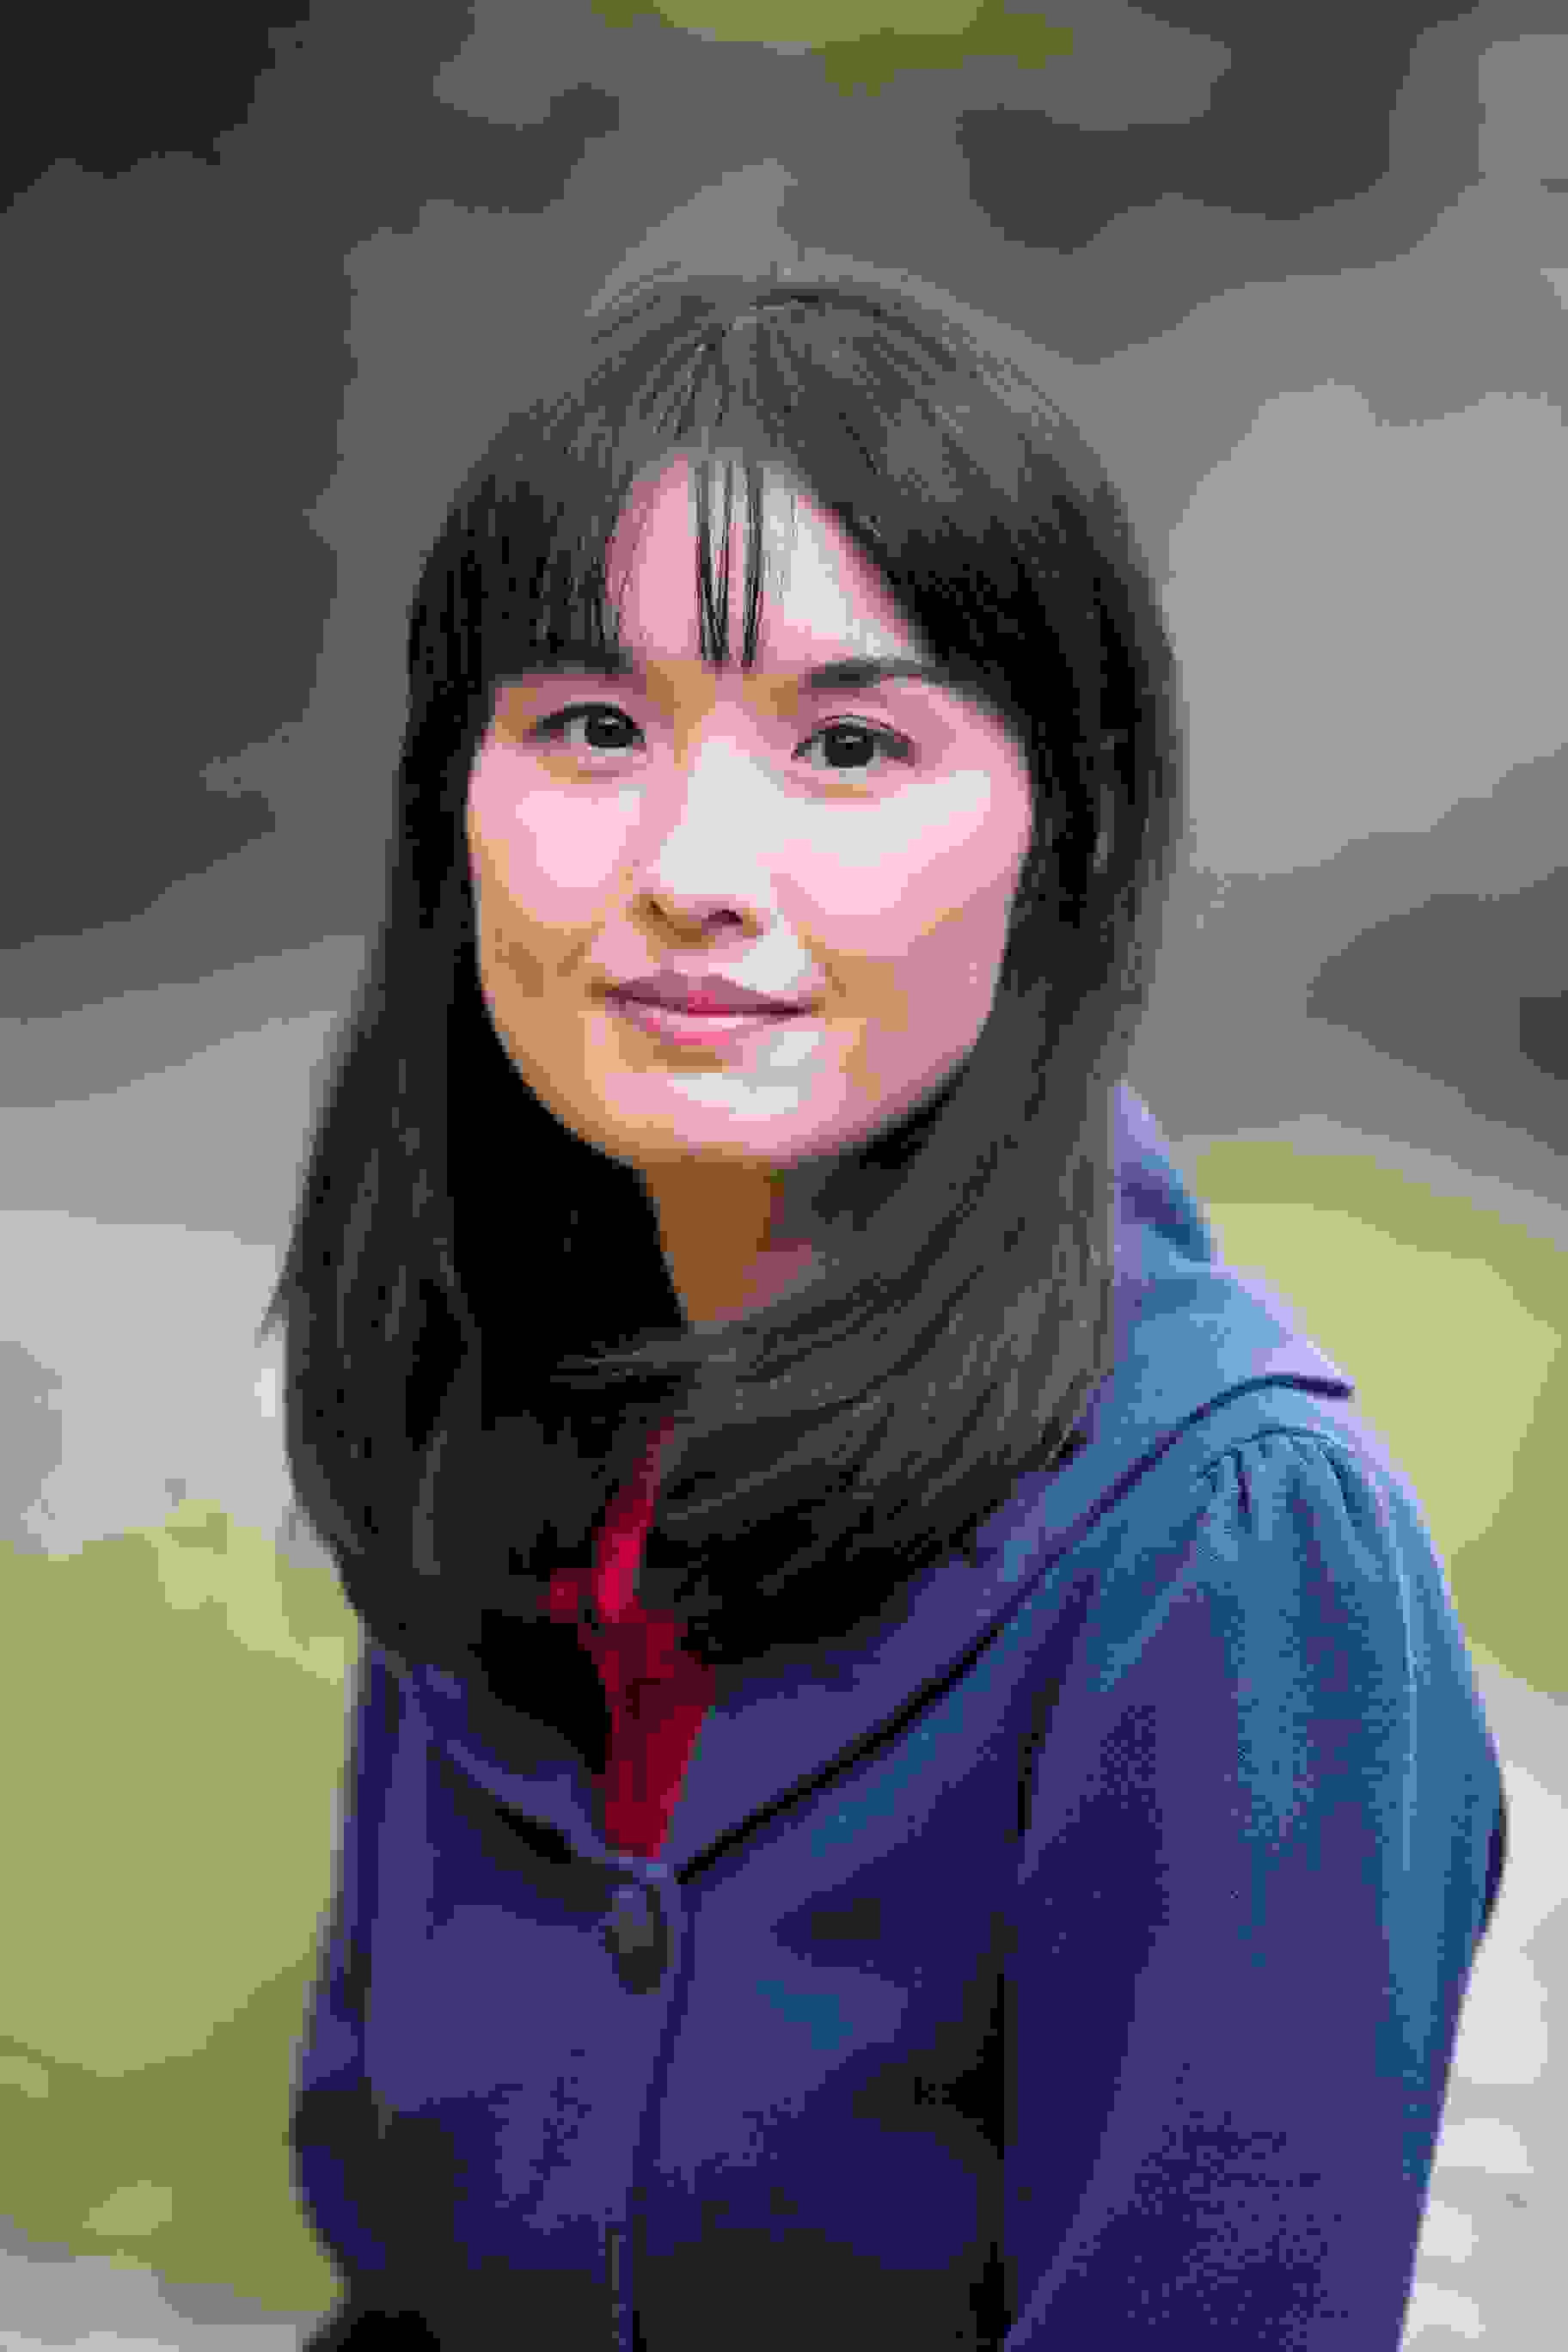 Student Sessions: Writers on Writers: Alice Pung discusses John Marsden